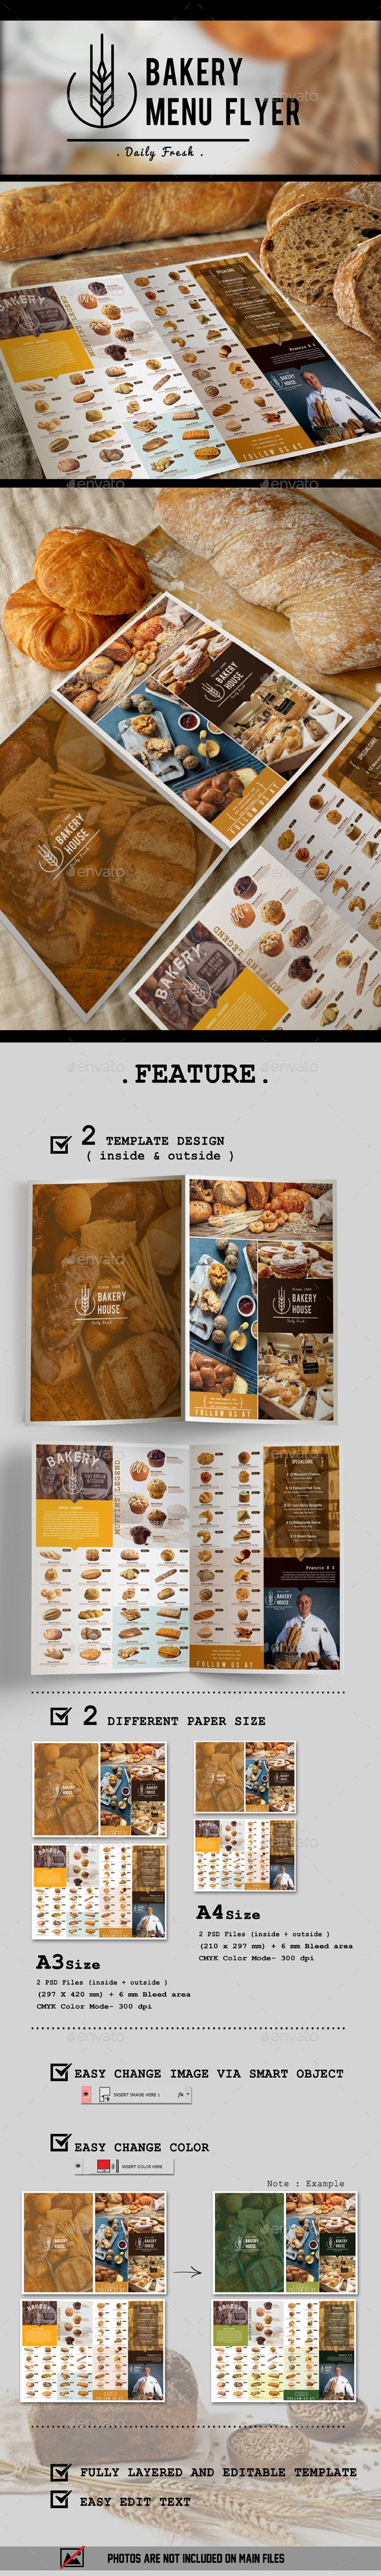 #Bakery Menu Flyer - #Flyers Print Templates Download here: https://graphicriver.net/item/bakery-menu-flyer/16083135?ref=alena994